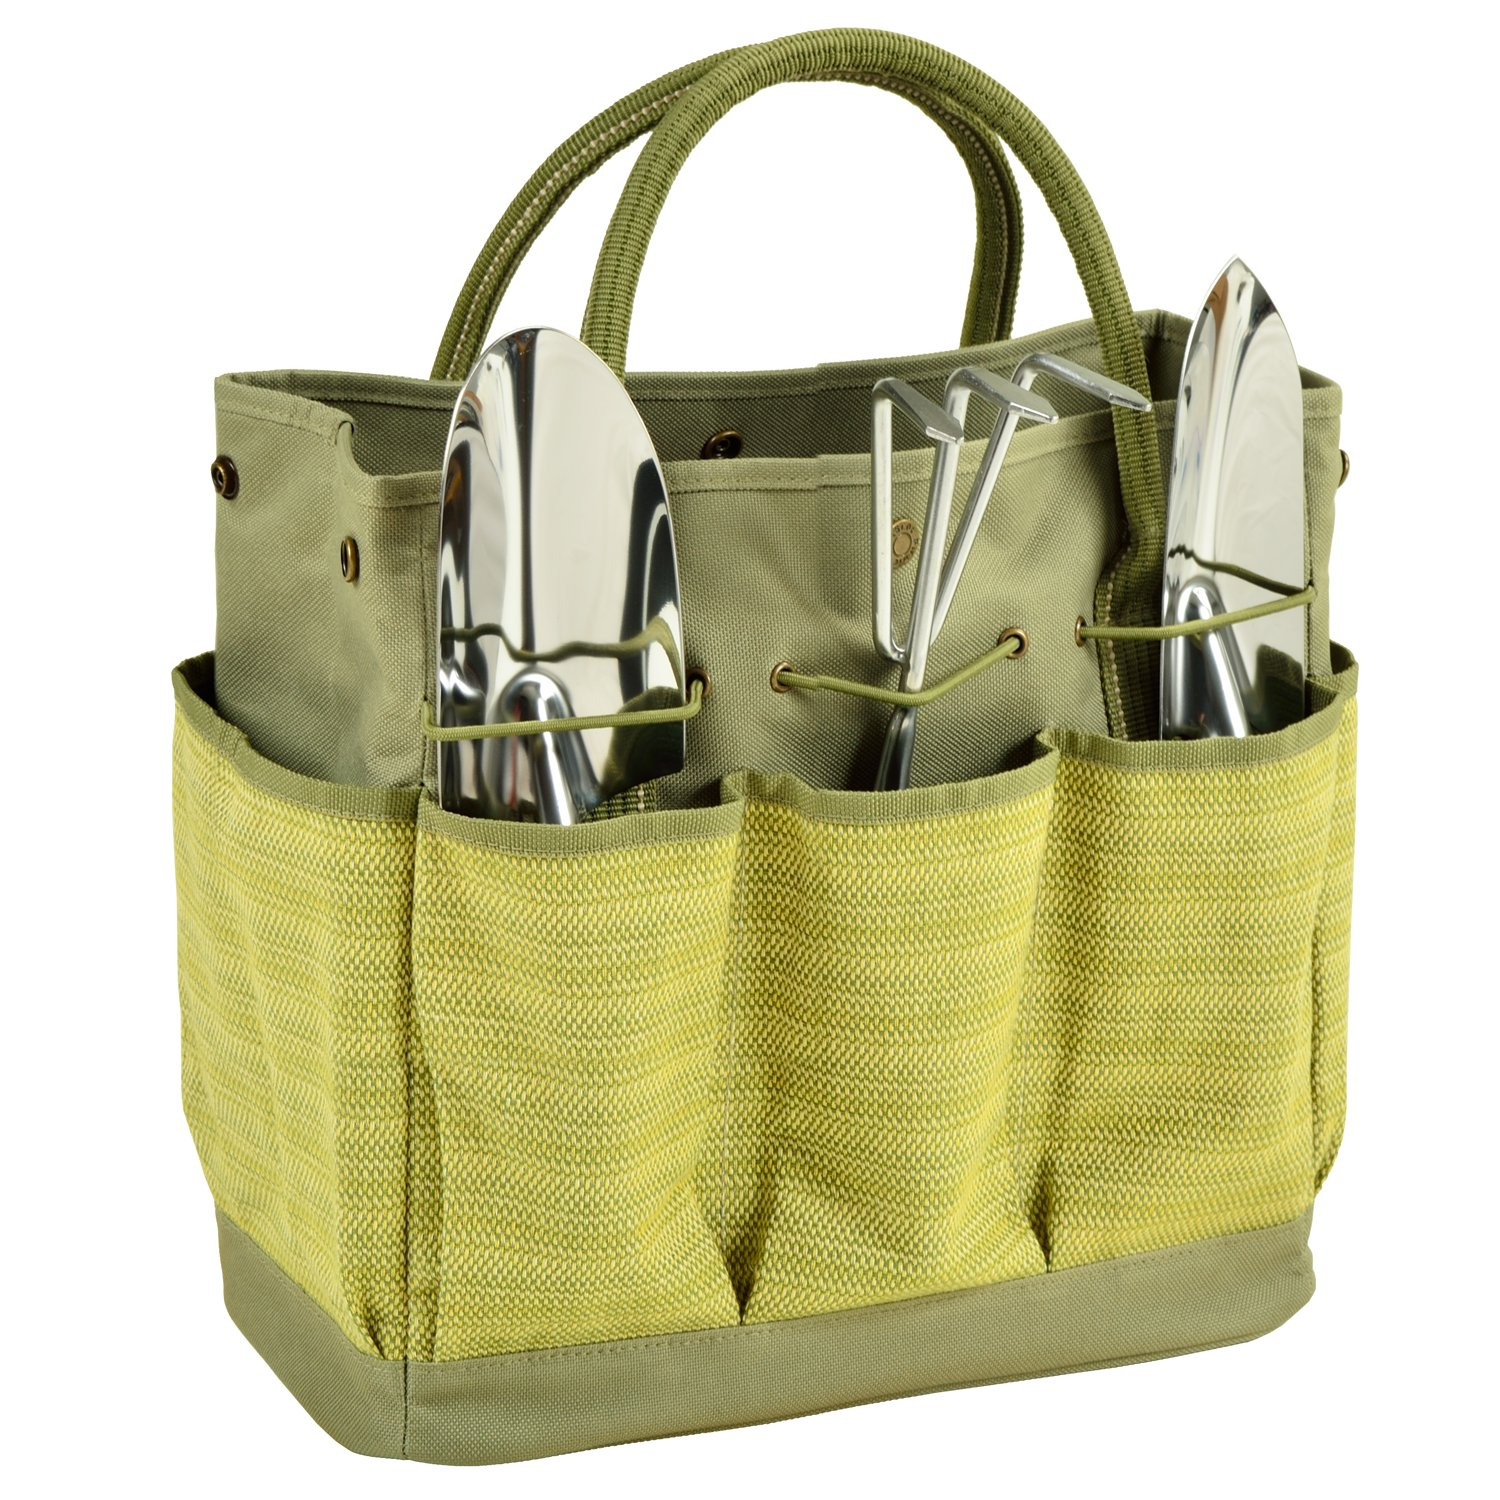 Picnic at Ascot Gardening Tote With 3 Tools, Olive Tweed